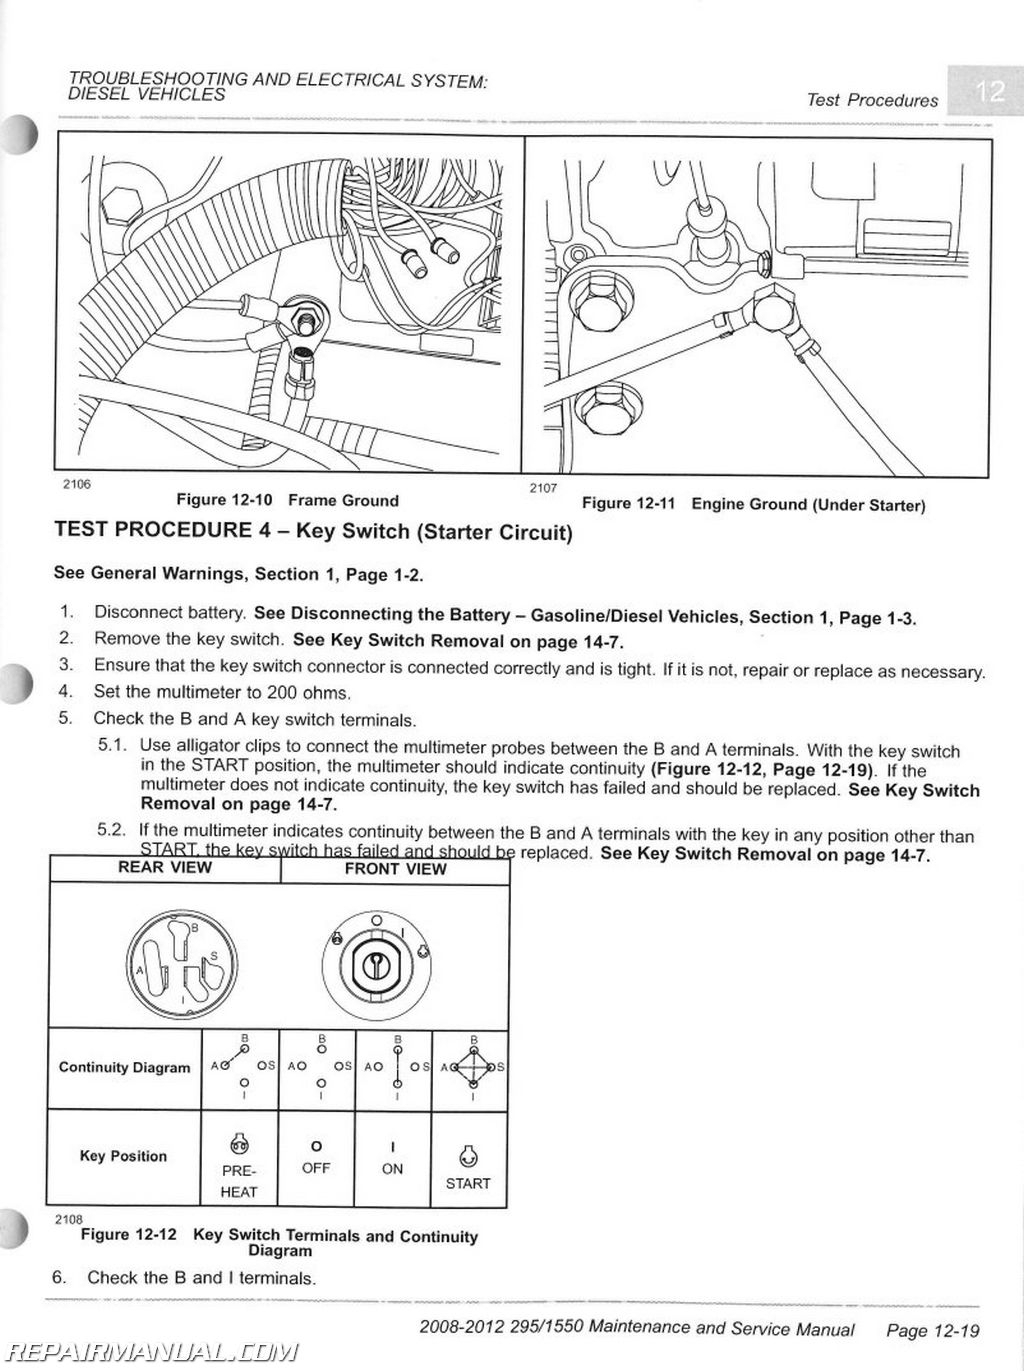 ingersoll rand club car wiring diagram in luxury parts 43 in inside club car golf cart parts diagram ingersoll rand club car wiring diagram in luxury parts 43 in Ingersoll Rand Compressor Parts Diagram at bakdesigns.co